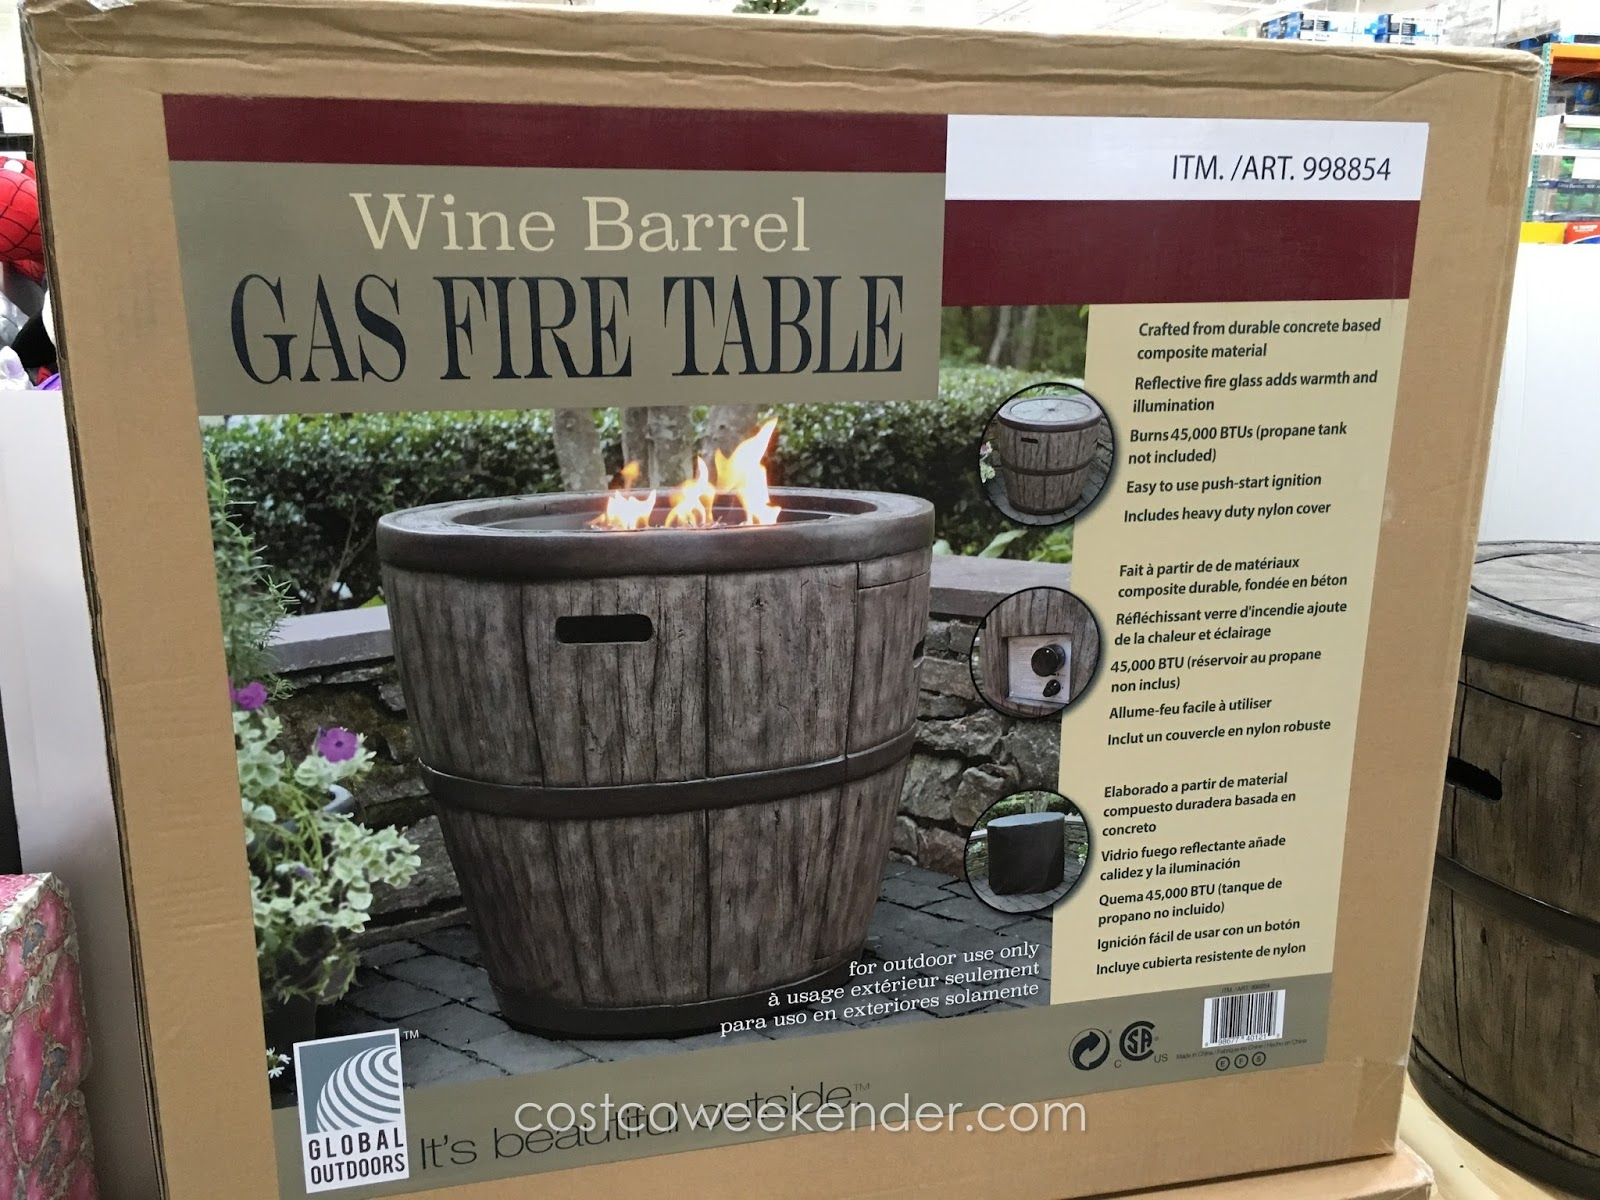 Global Outdoors Wine Barrel Gas Fire Table Costco Weekender